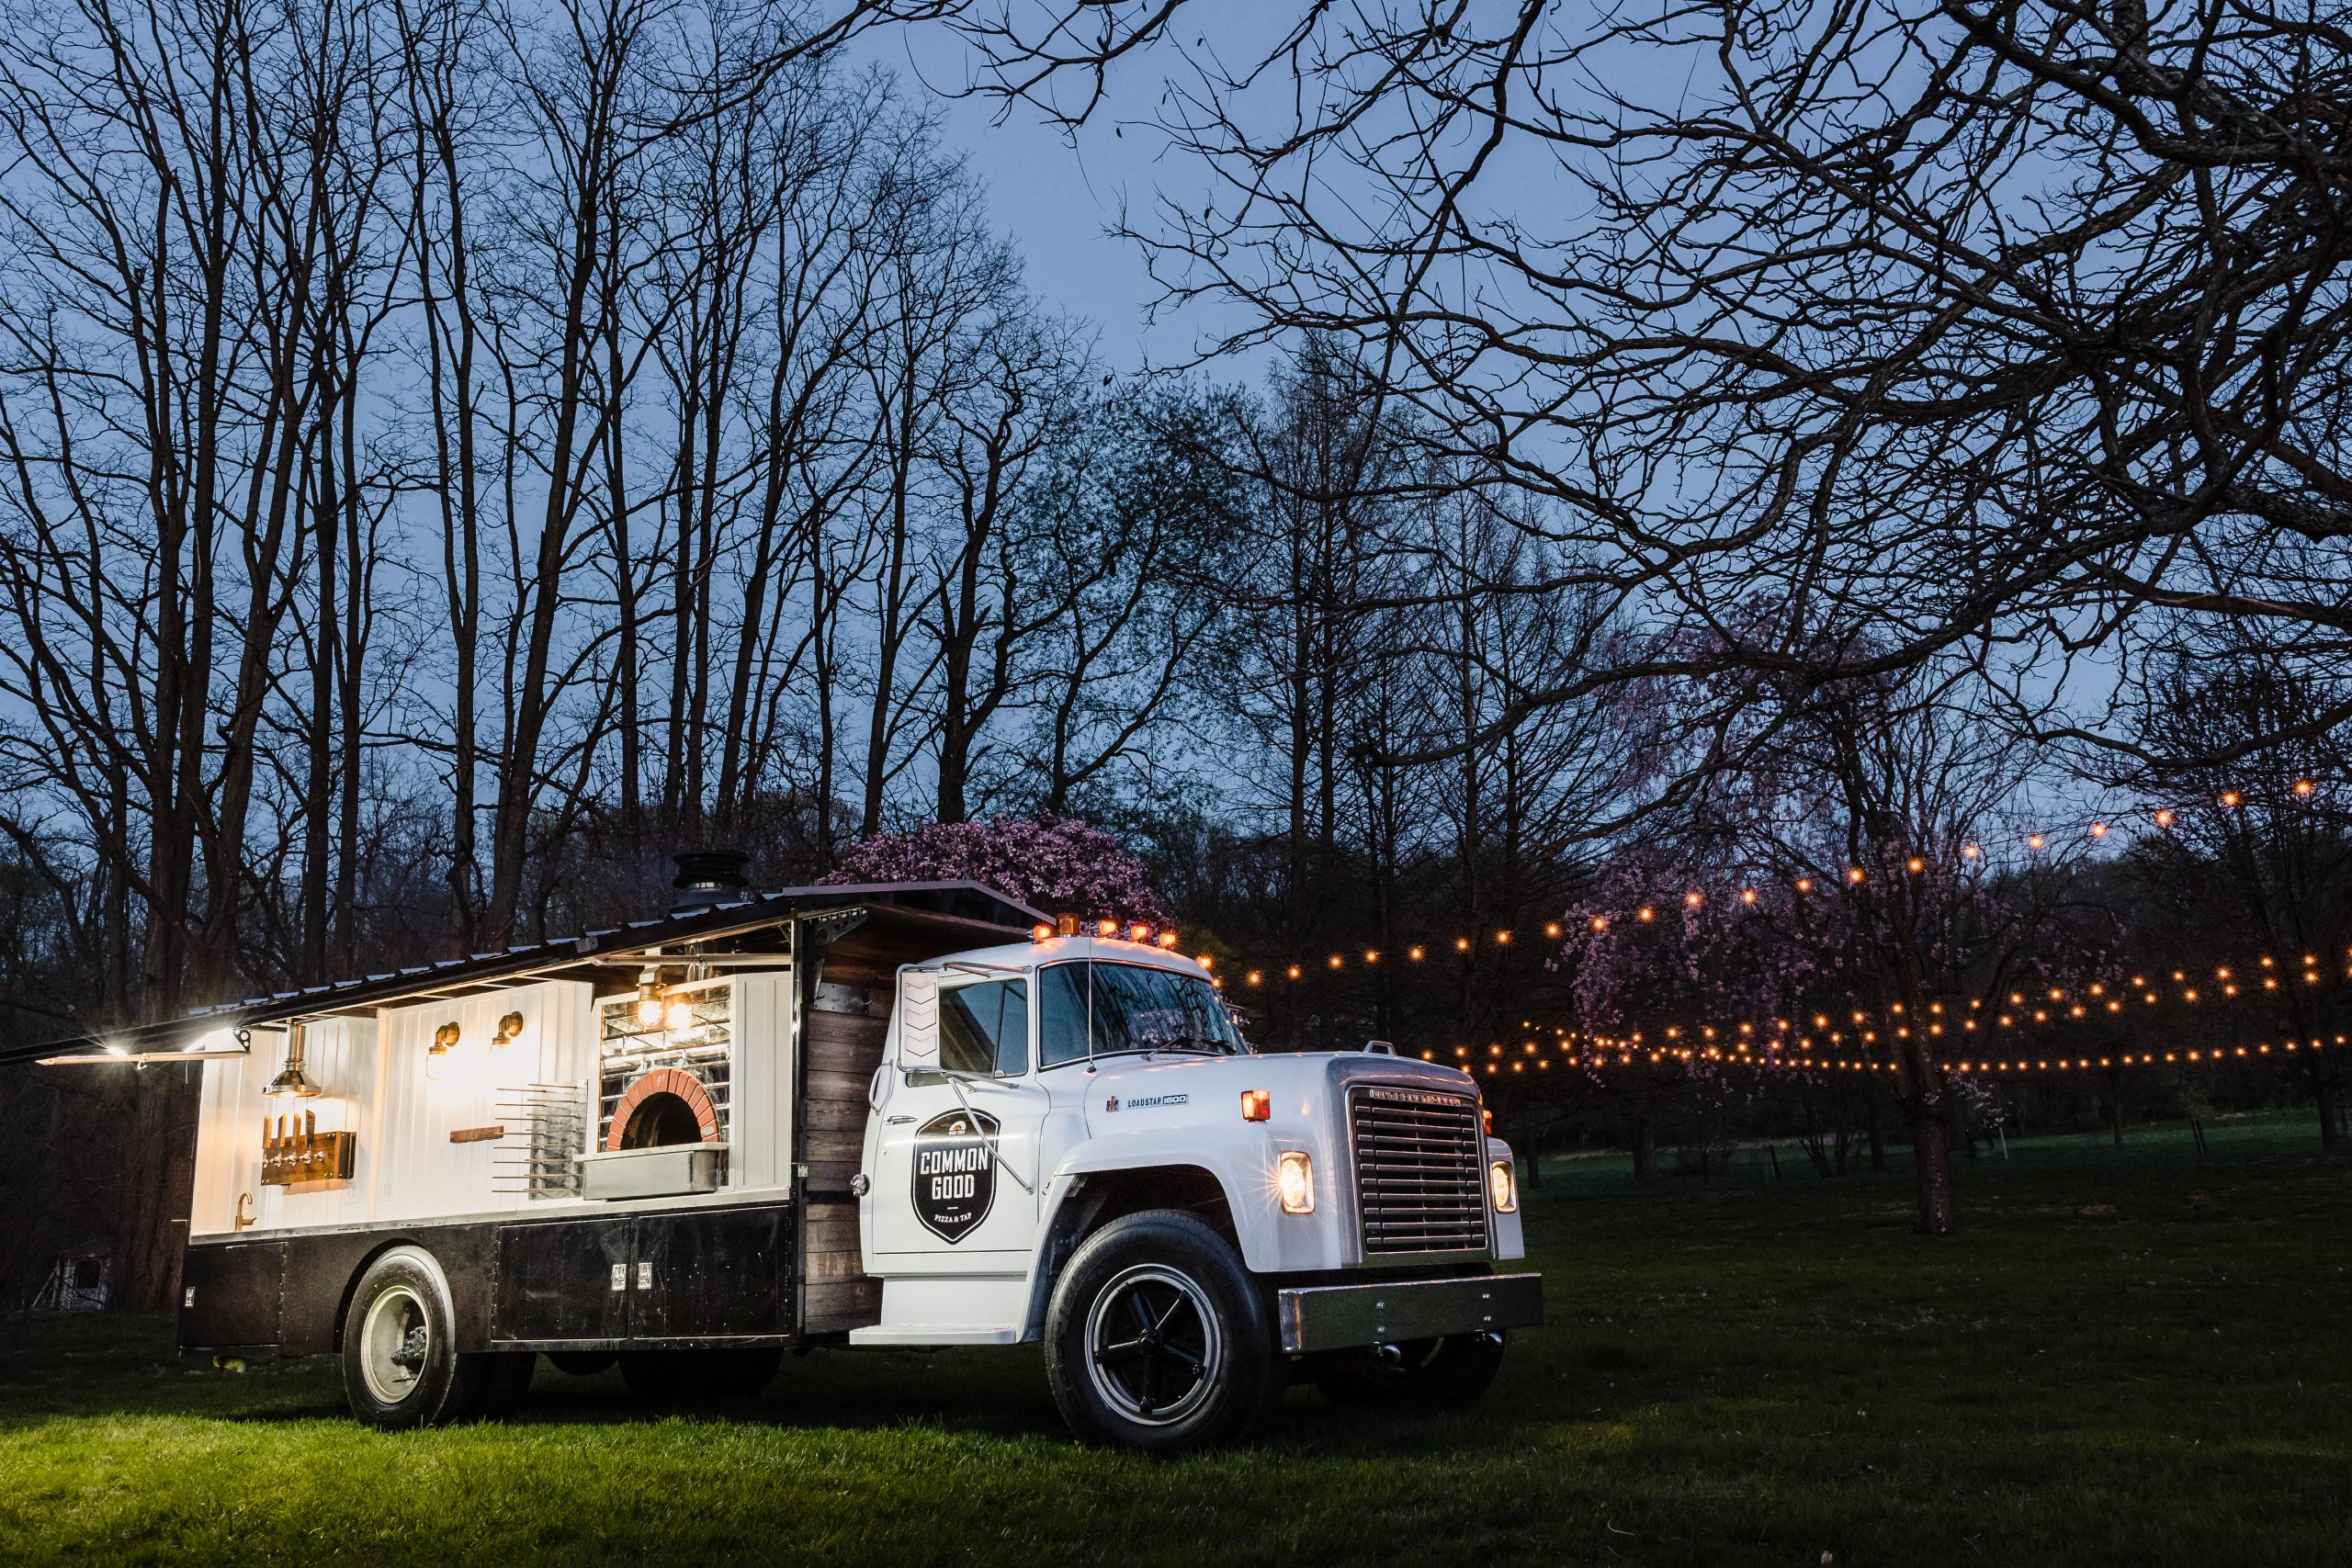 Common Good Pizza and Tap Truck for Late Night Snack